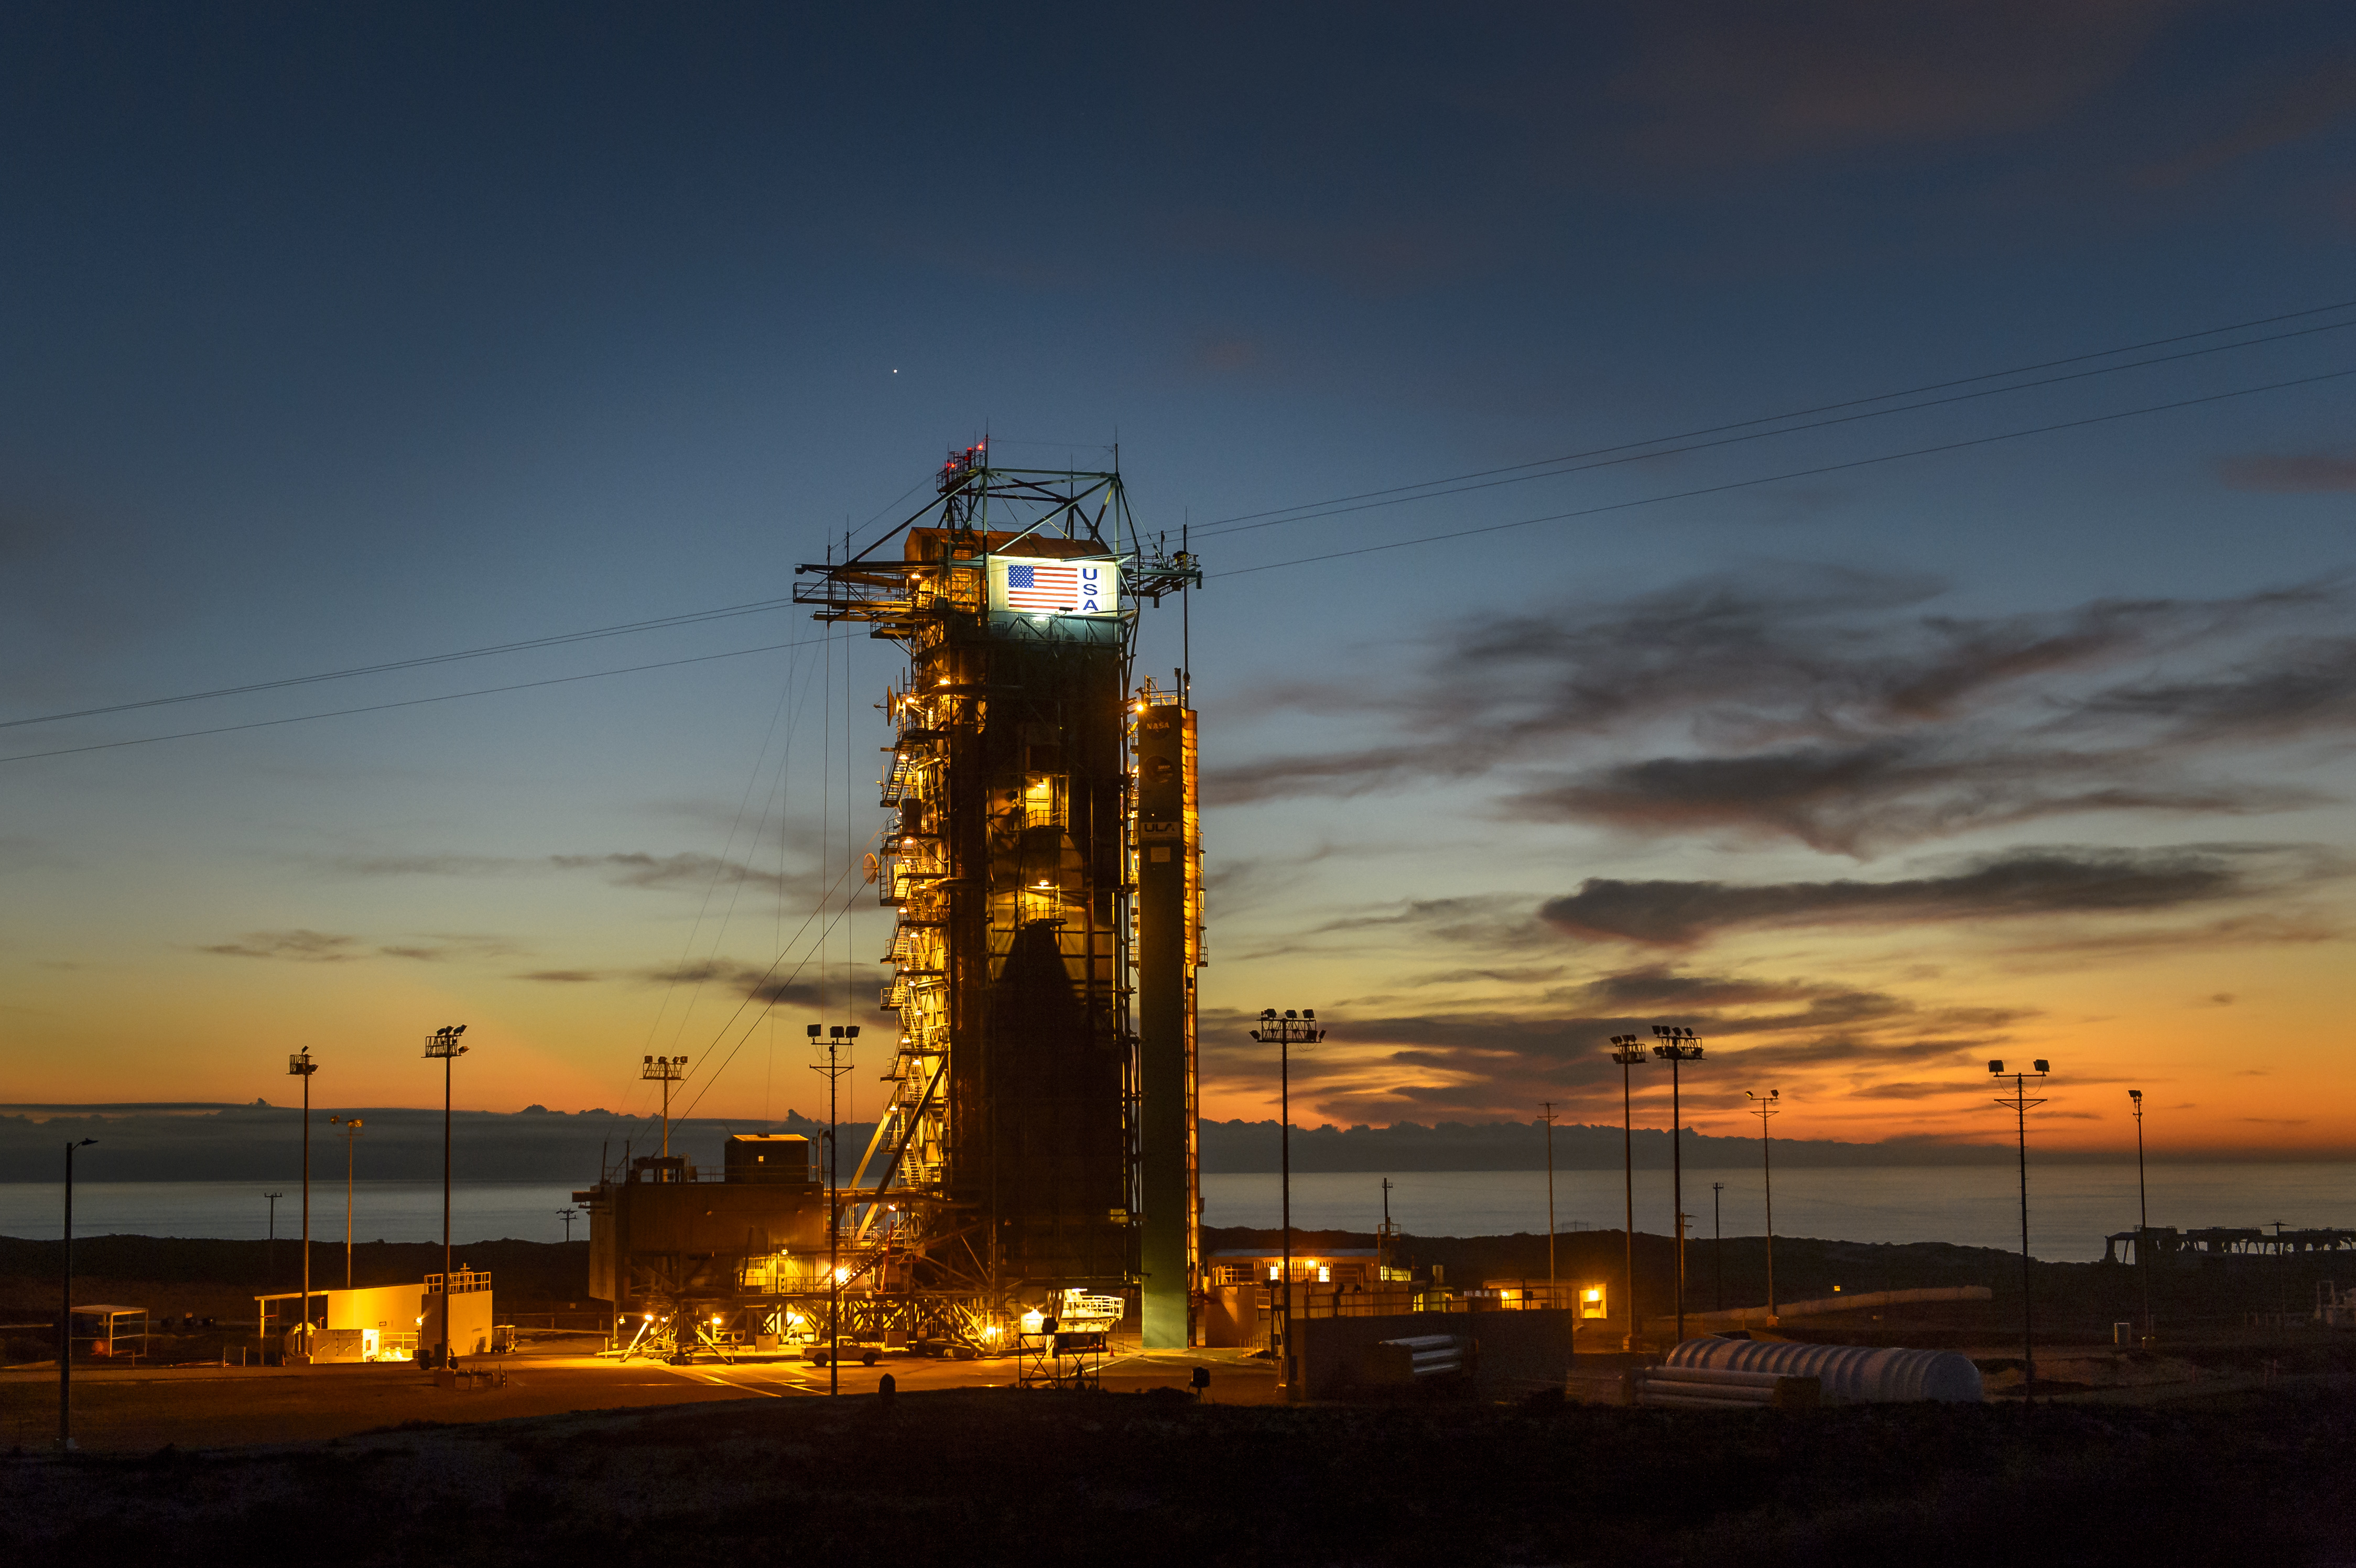 Ready for Launch at Sunset